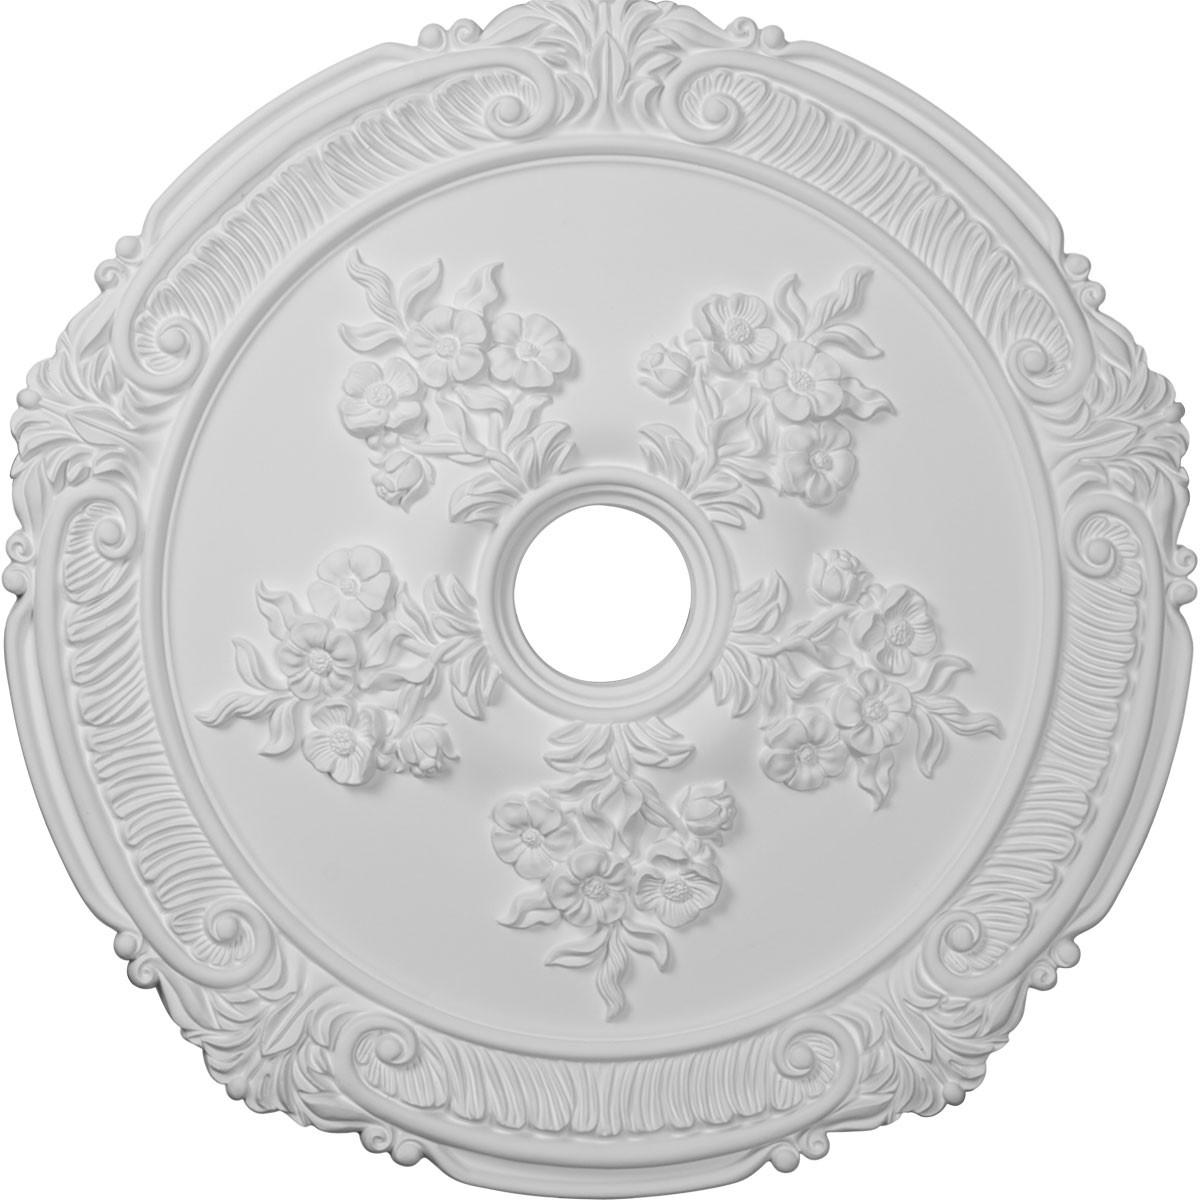 """EM-CM26AT - 26""""OD x 3 3/4""""ID x 1 1/2""""P Attica with Rose Ceiling Medallion (Fits Canopies up to 4 1/2"""")"""